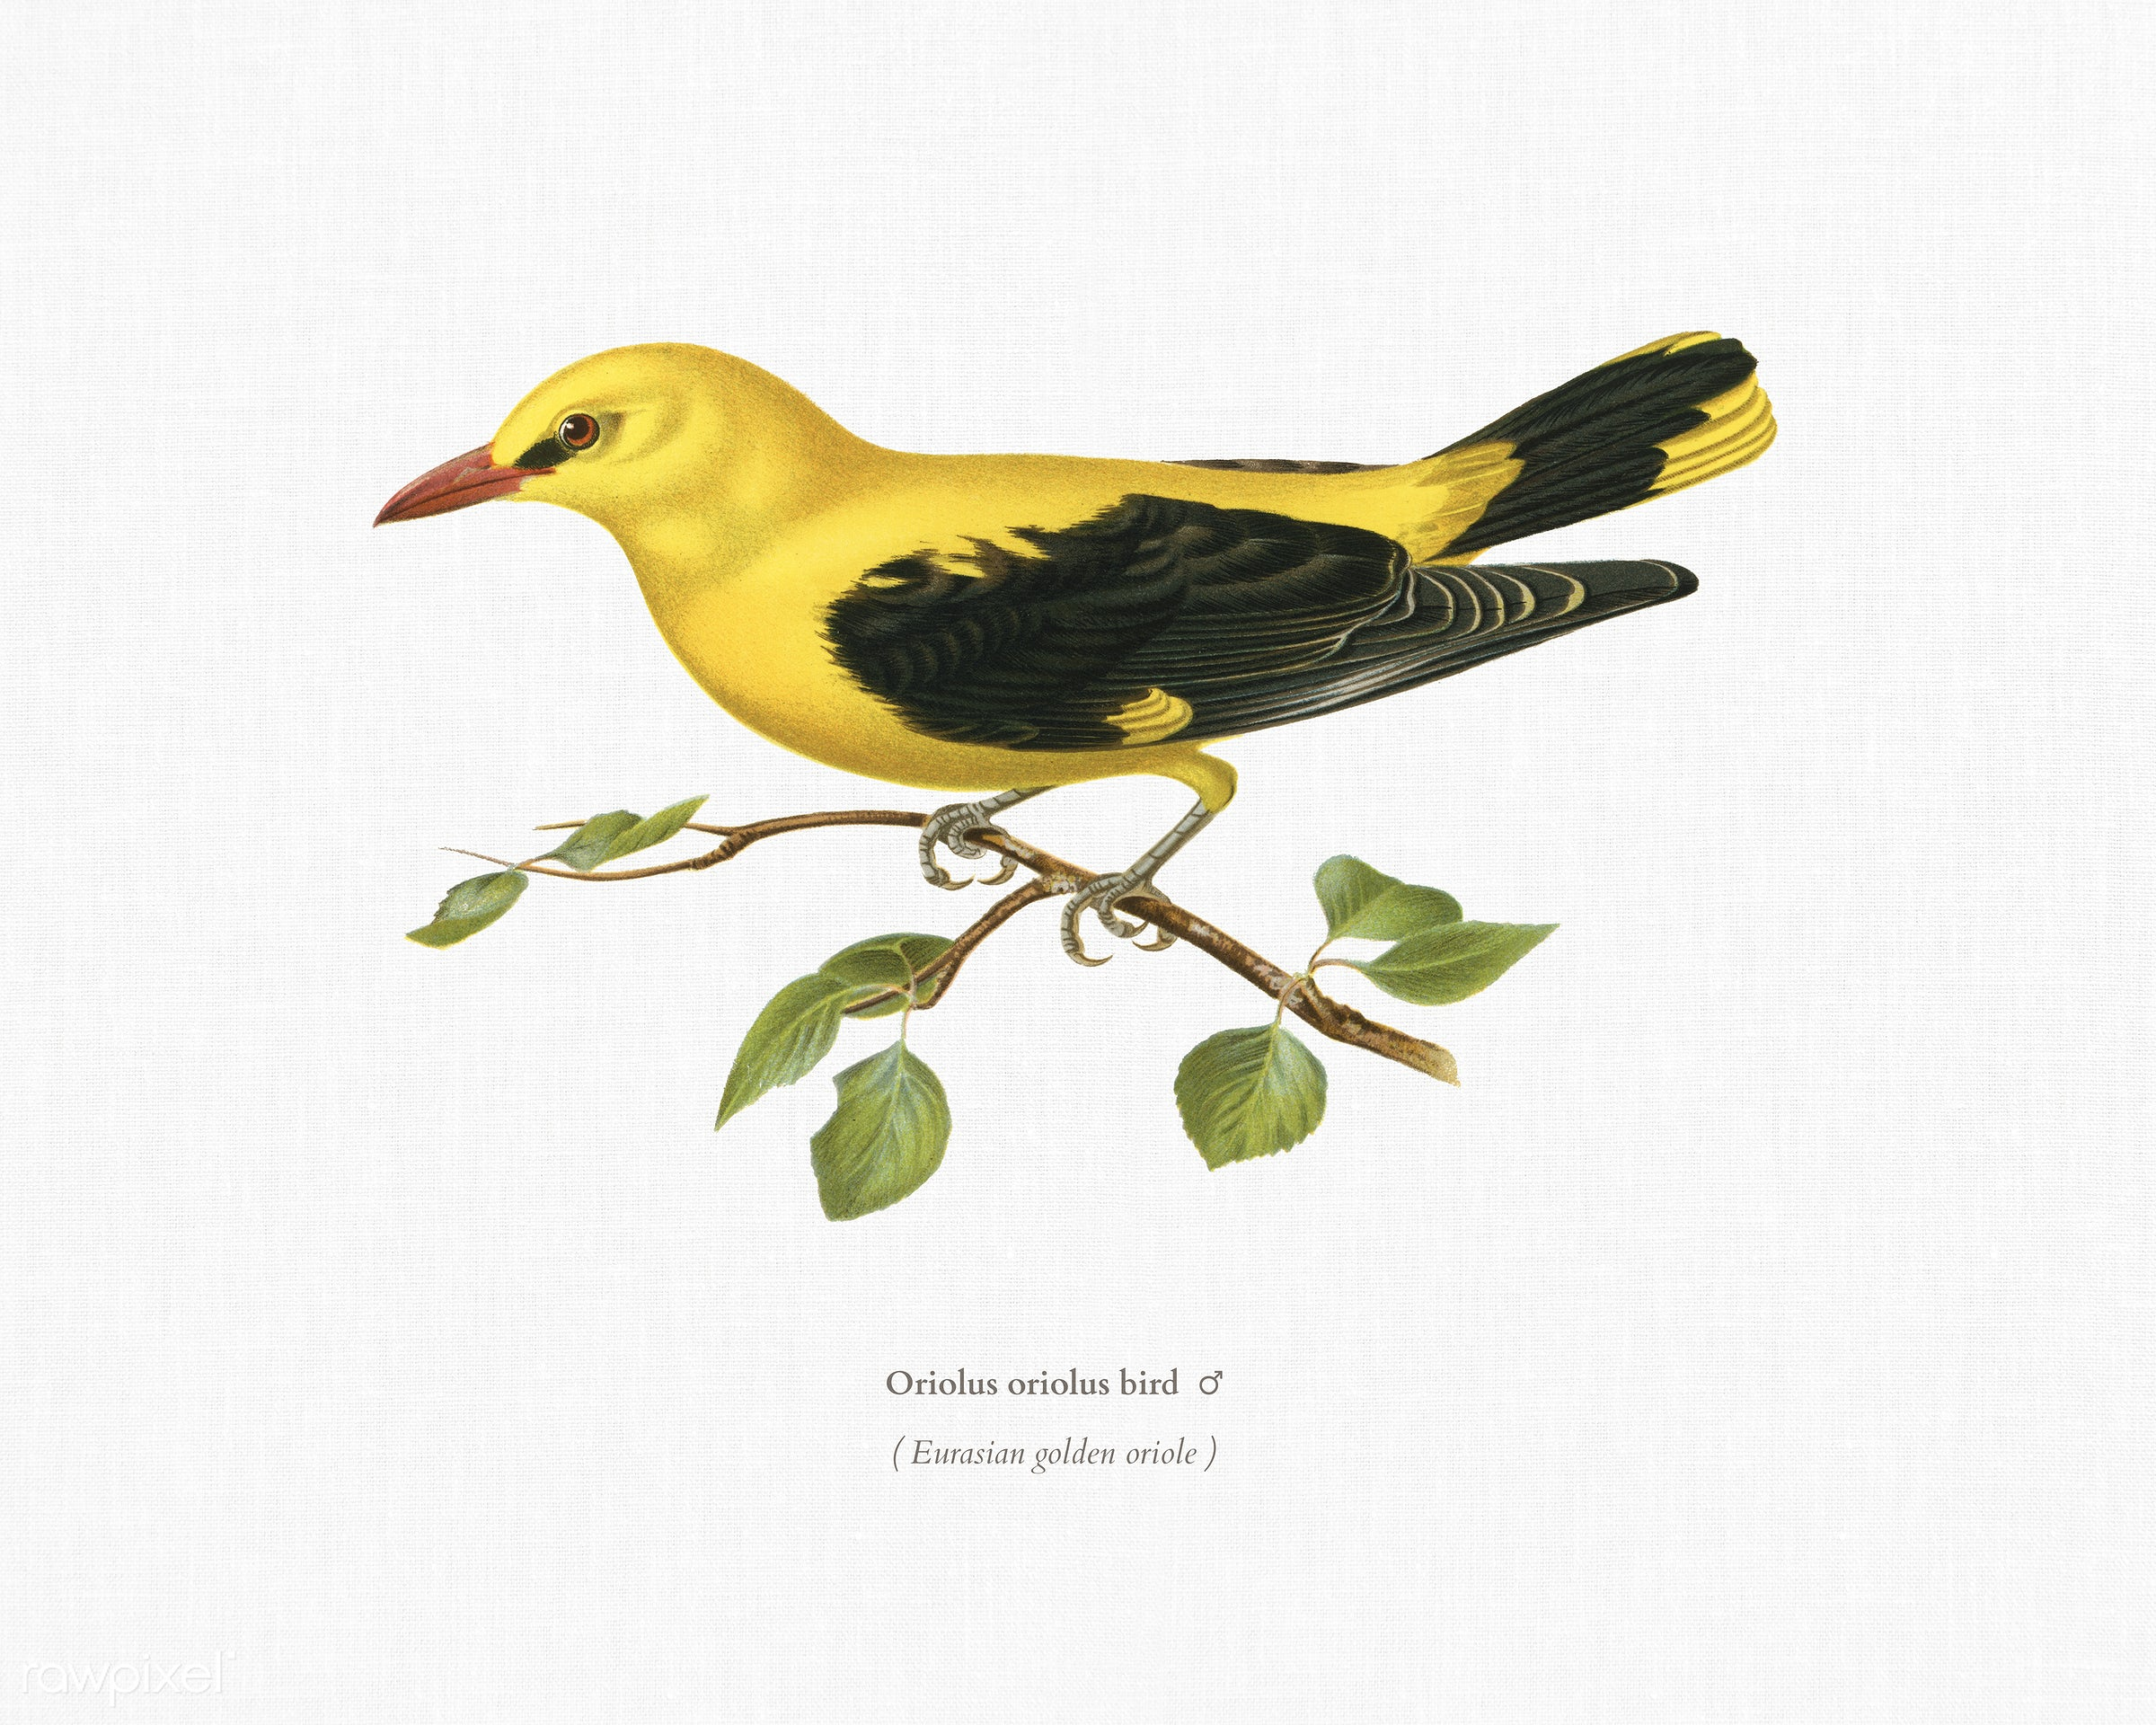 Eurasian golden oriole male (Oriolus oriolus bird) illustrated by the von Wright brothers. Digitally enhanced from our own...